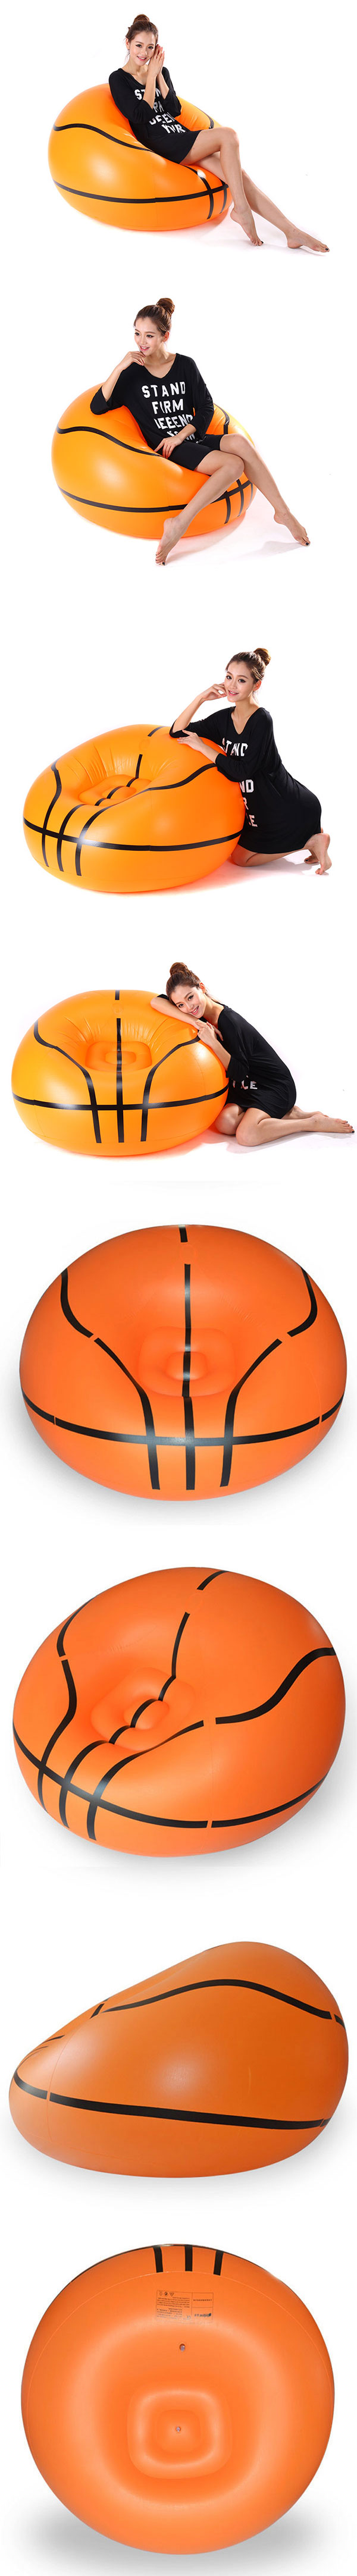 Basketball Bean Bag Chair Football Basketball Leisure Inflatable Sofa Portable Bean Bag Chair Outdoor Living Room Furniture